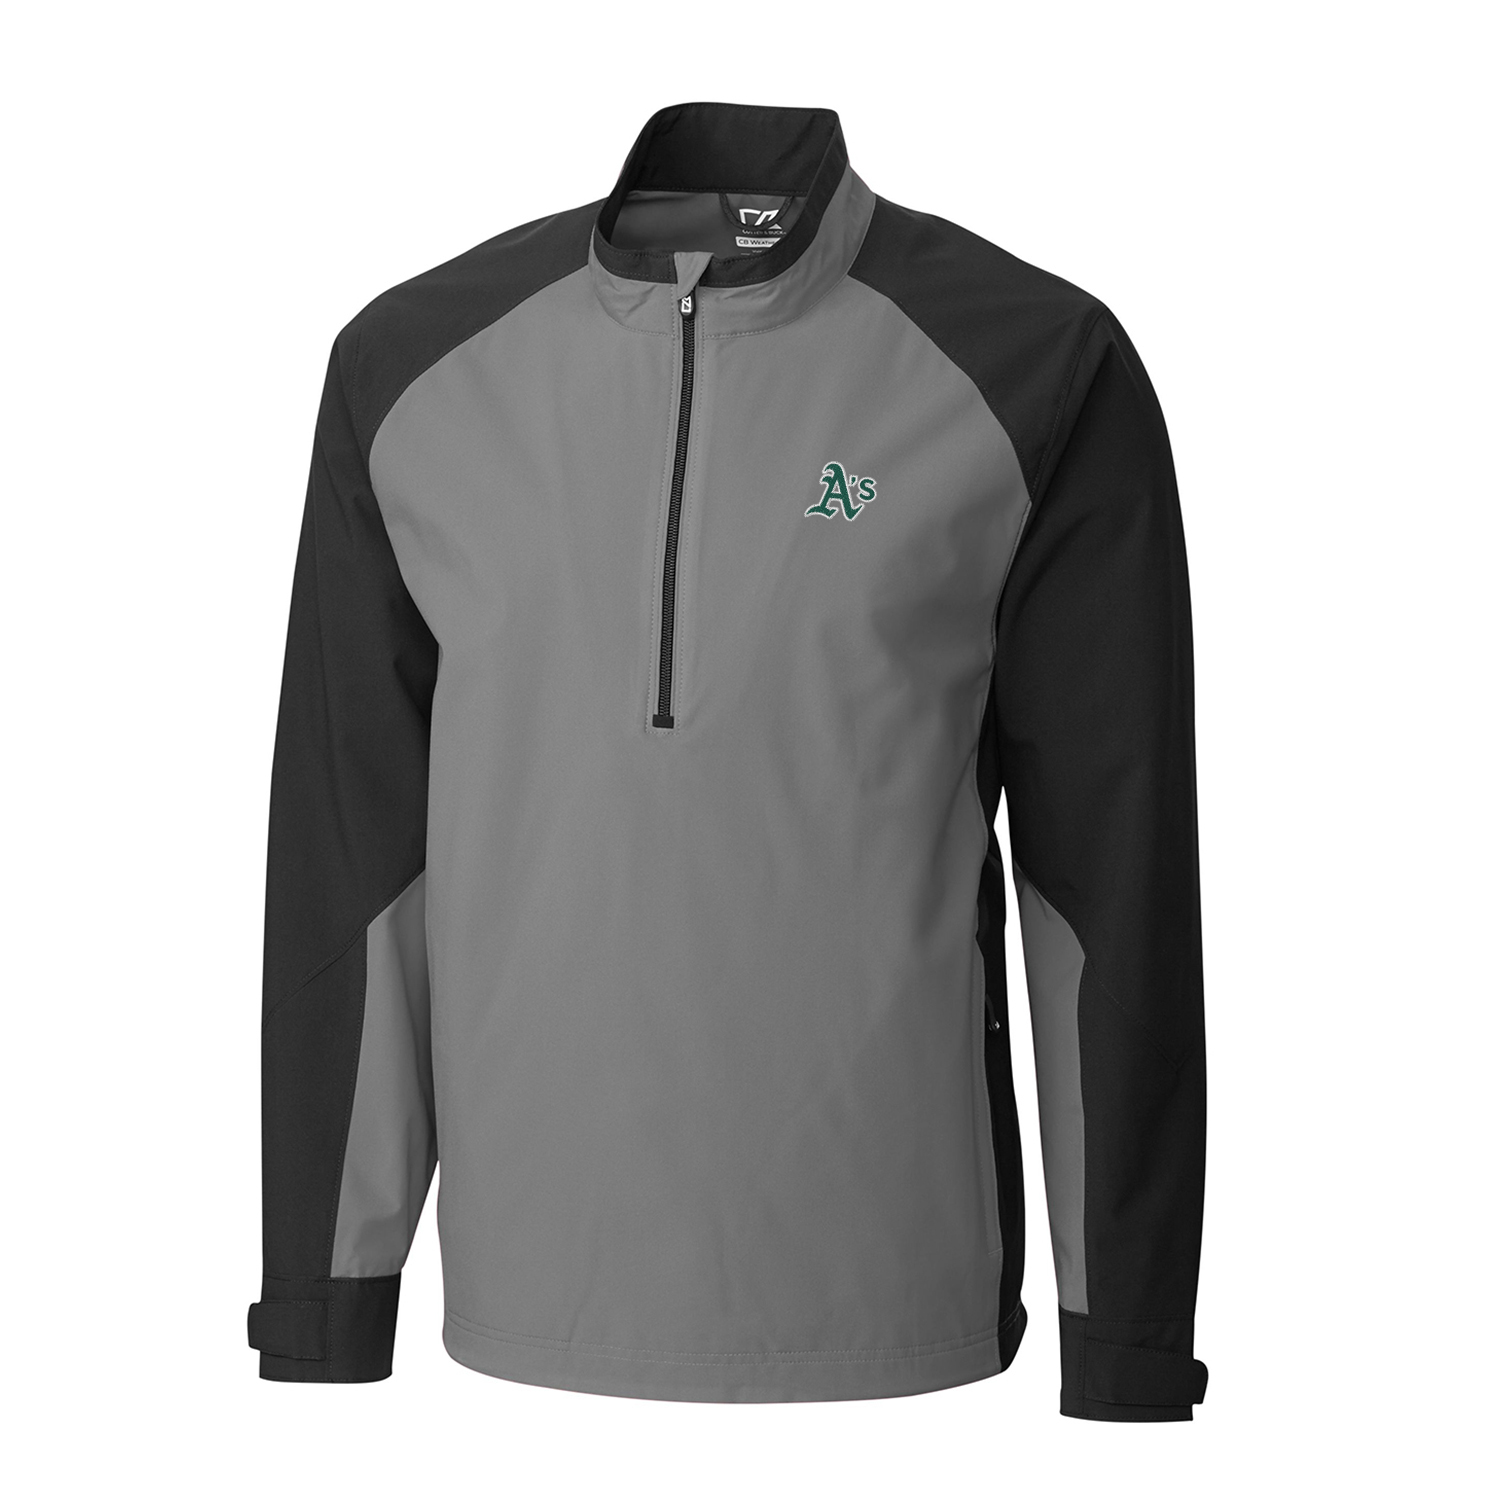 Men's Cutter & Buck Gray/Black Oakland Athletics Summit WeatherTec Half-Zip Pullover Jacket